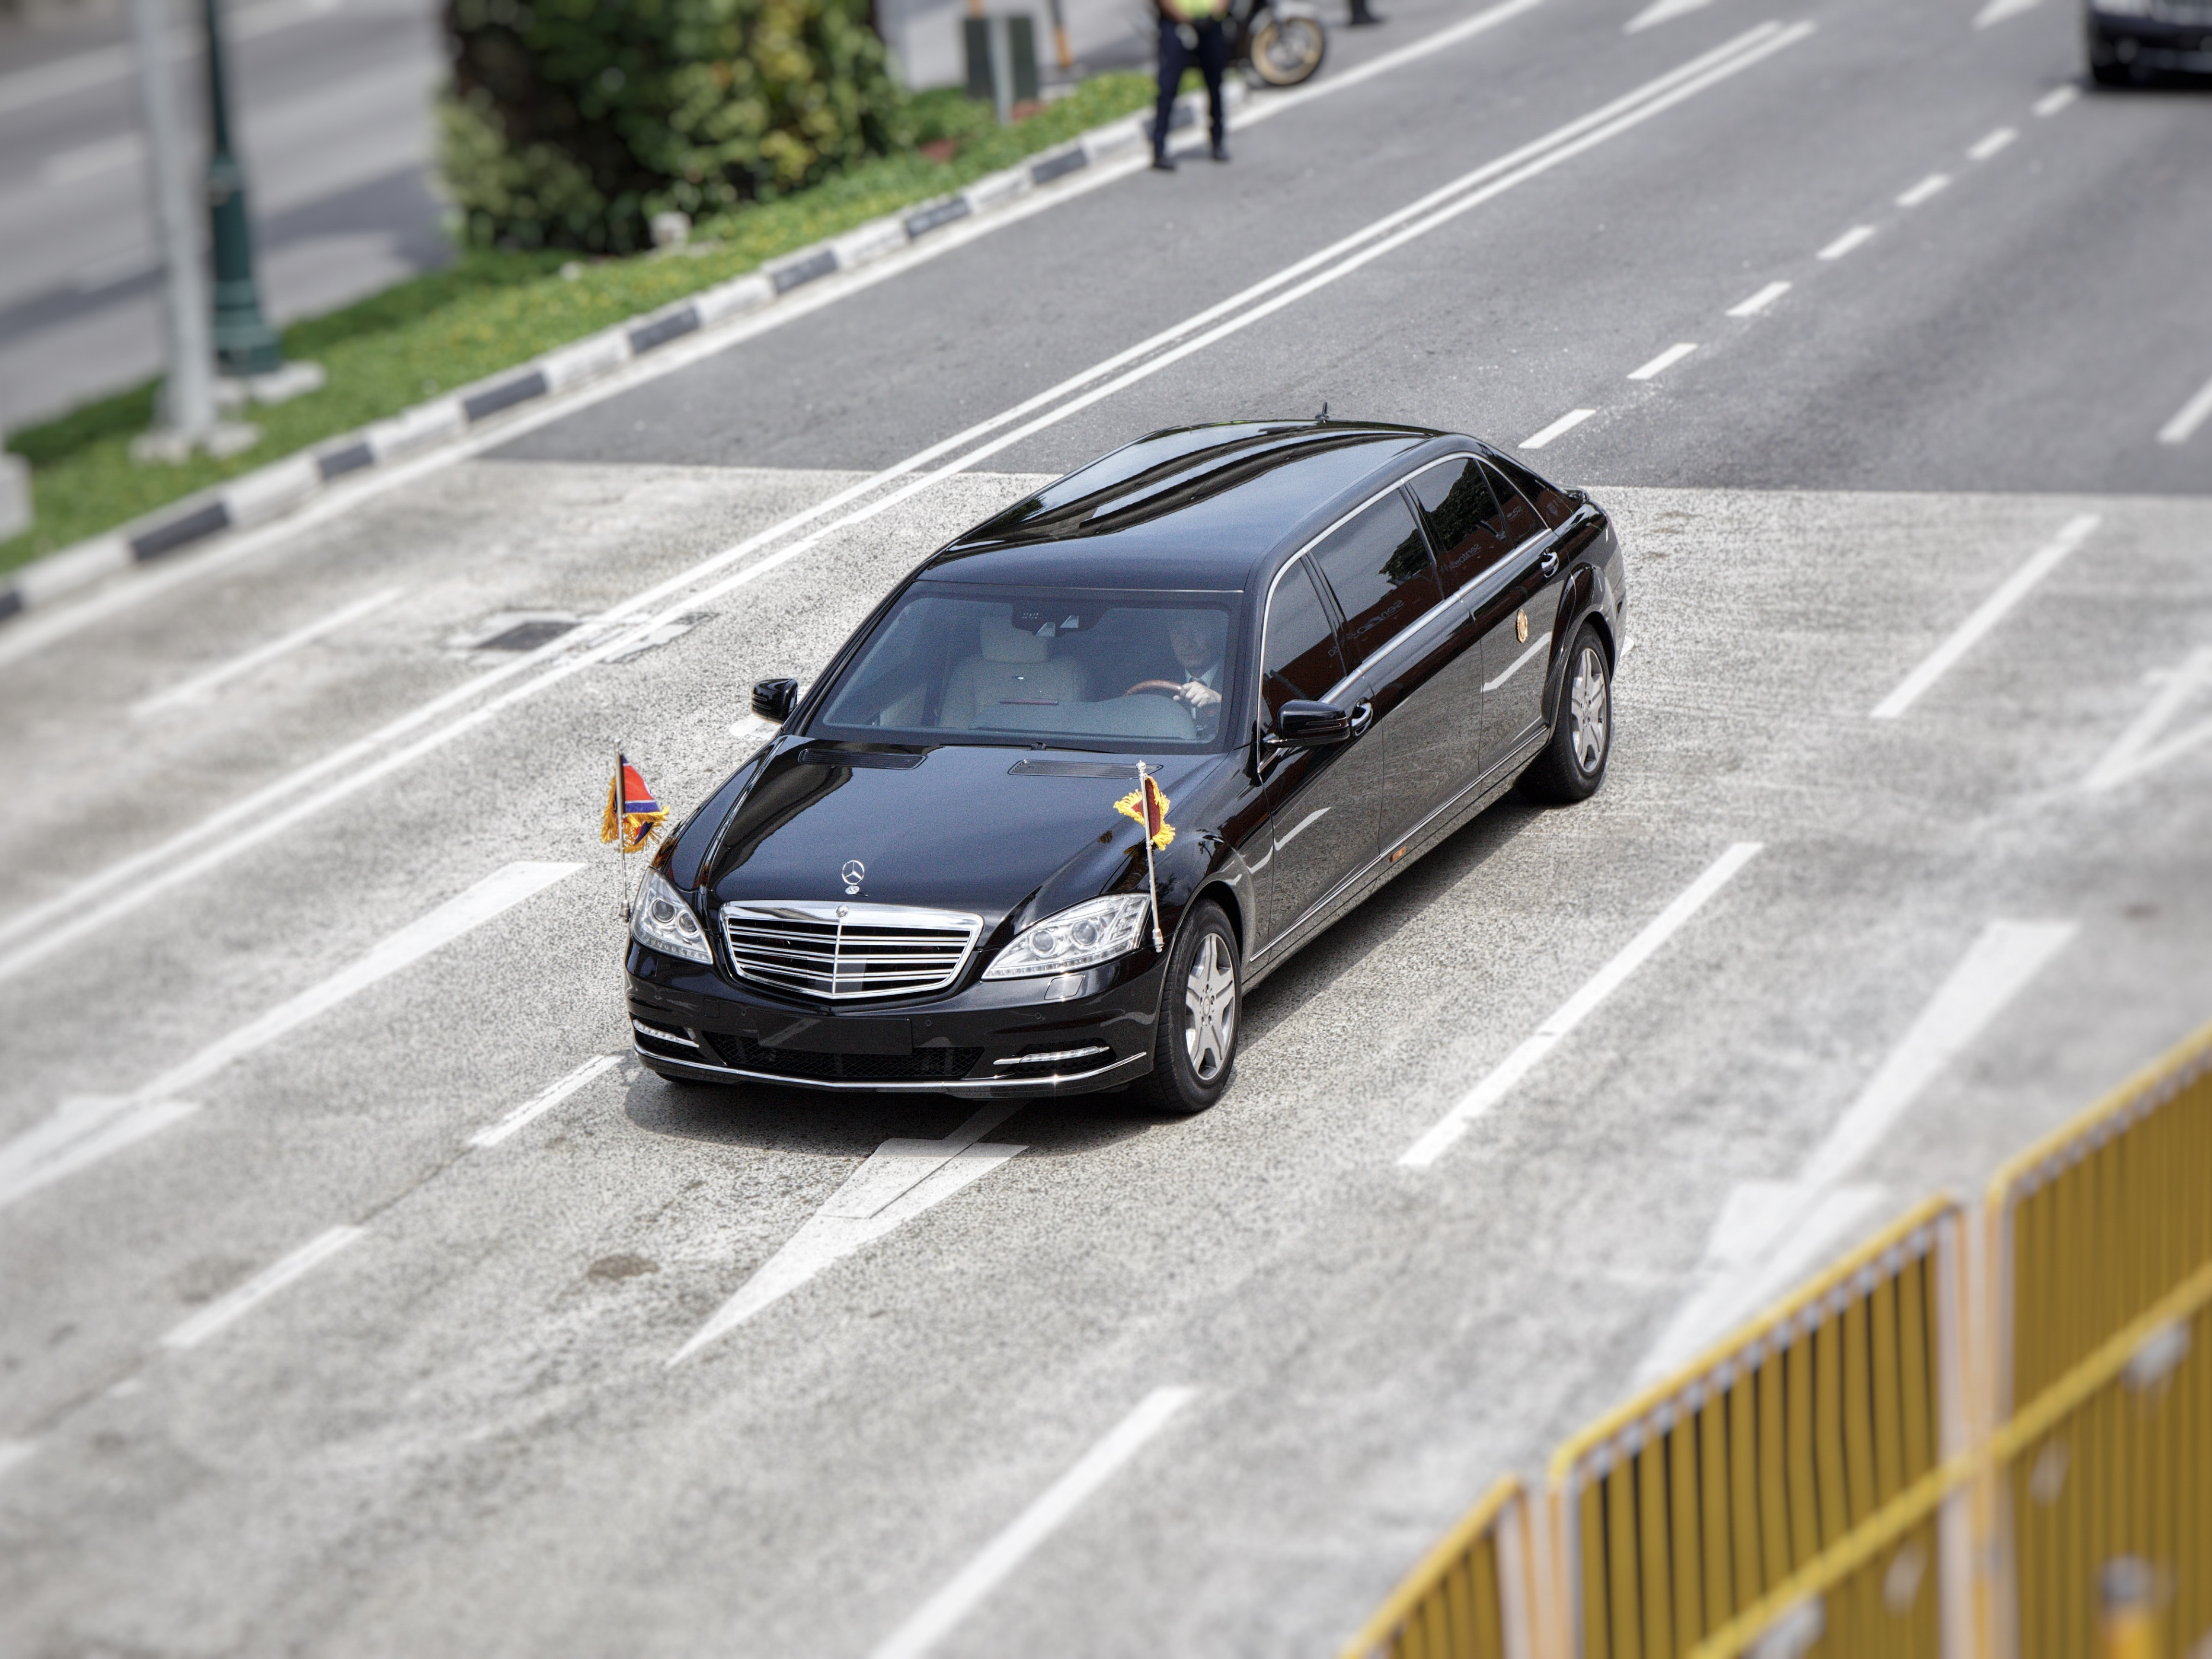 black Mercedes-Benz vehicle on road